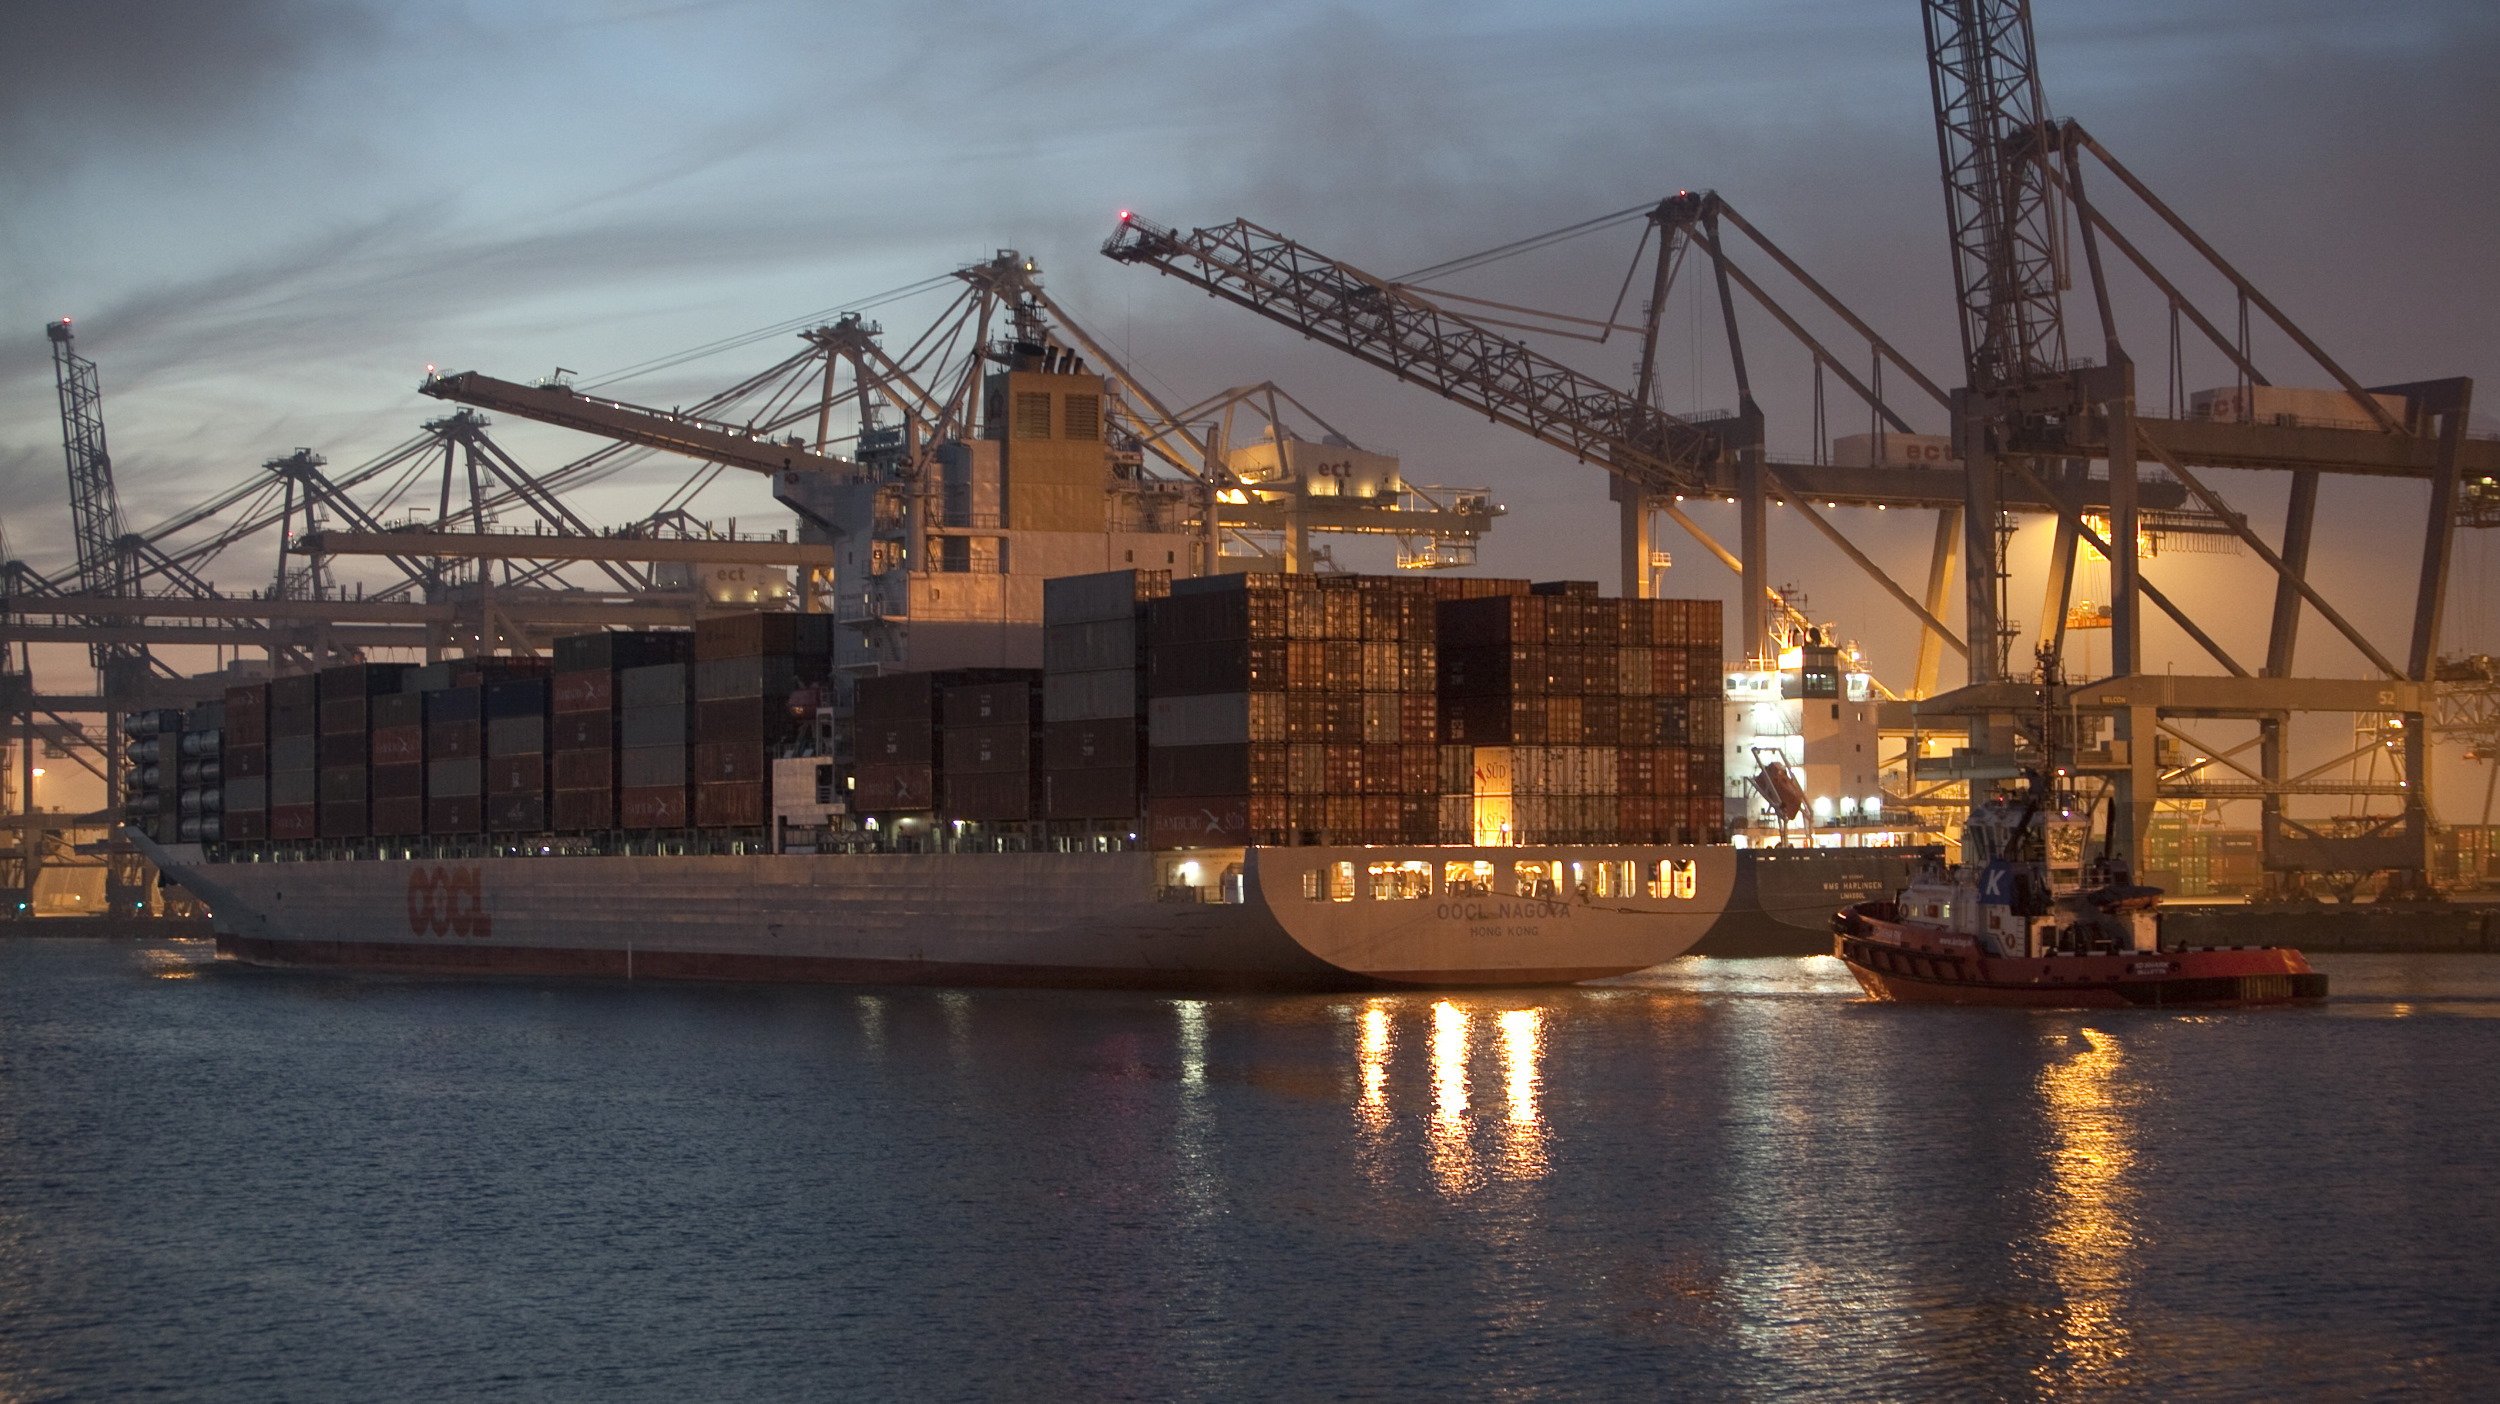 haven industrie nacht verlichting zonsondergang containerschip containers kranen water sleepboot